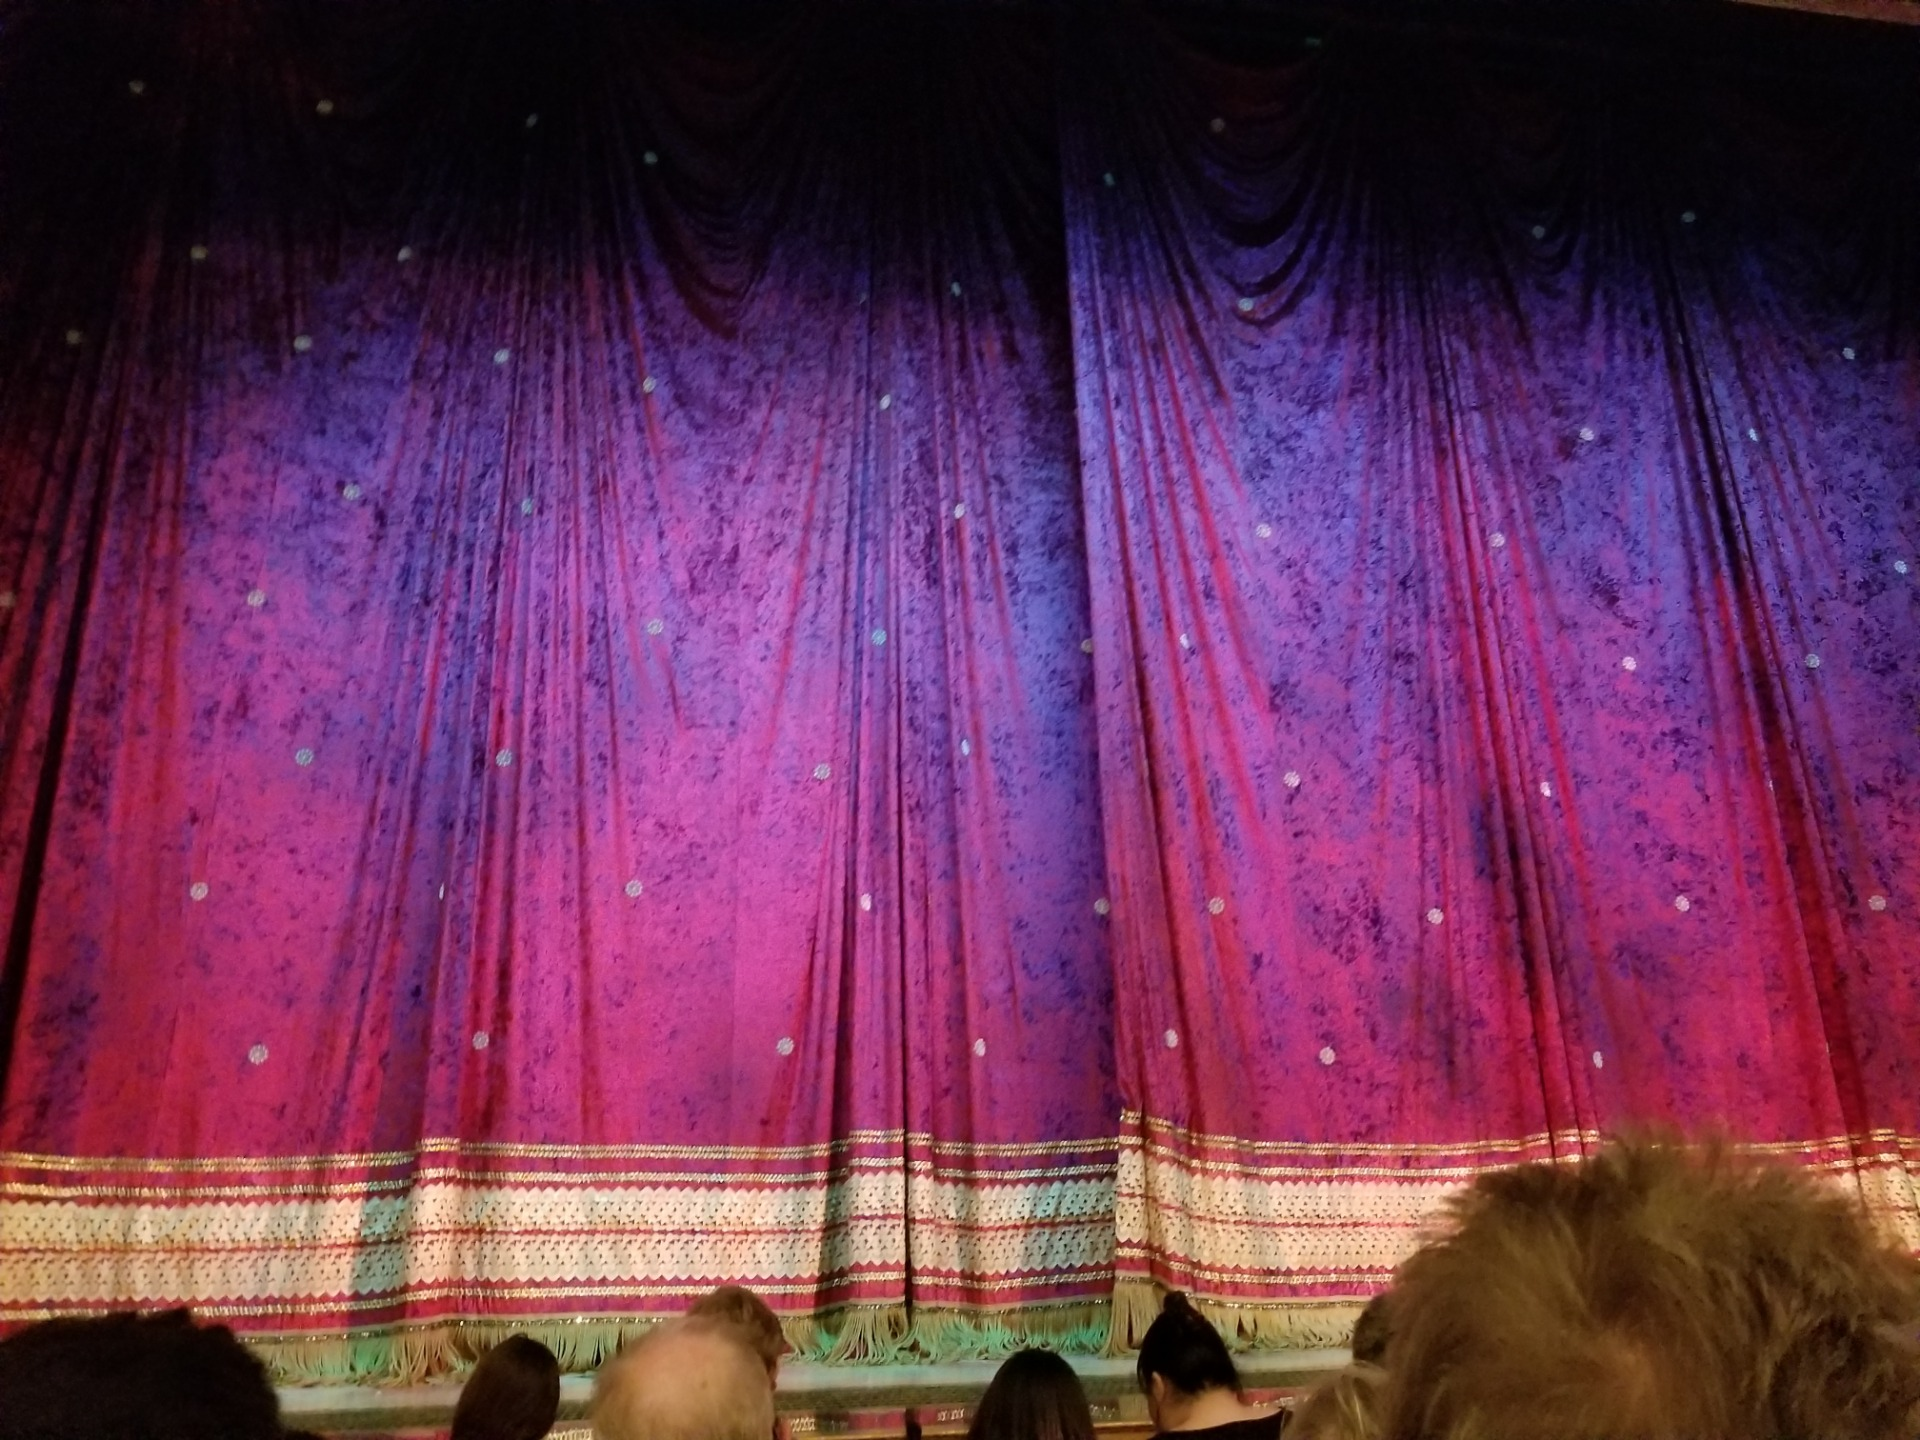 Booth Theatre Section Orchestra C Row C Seat 102